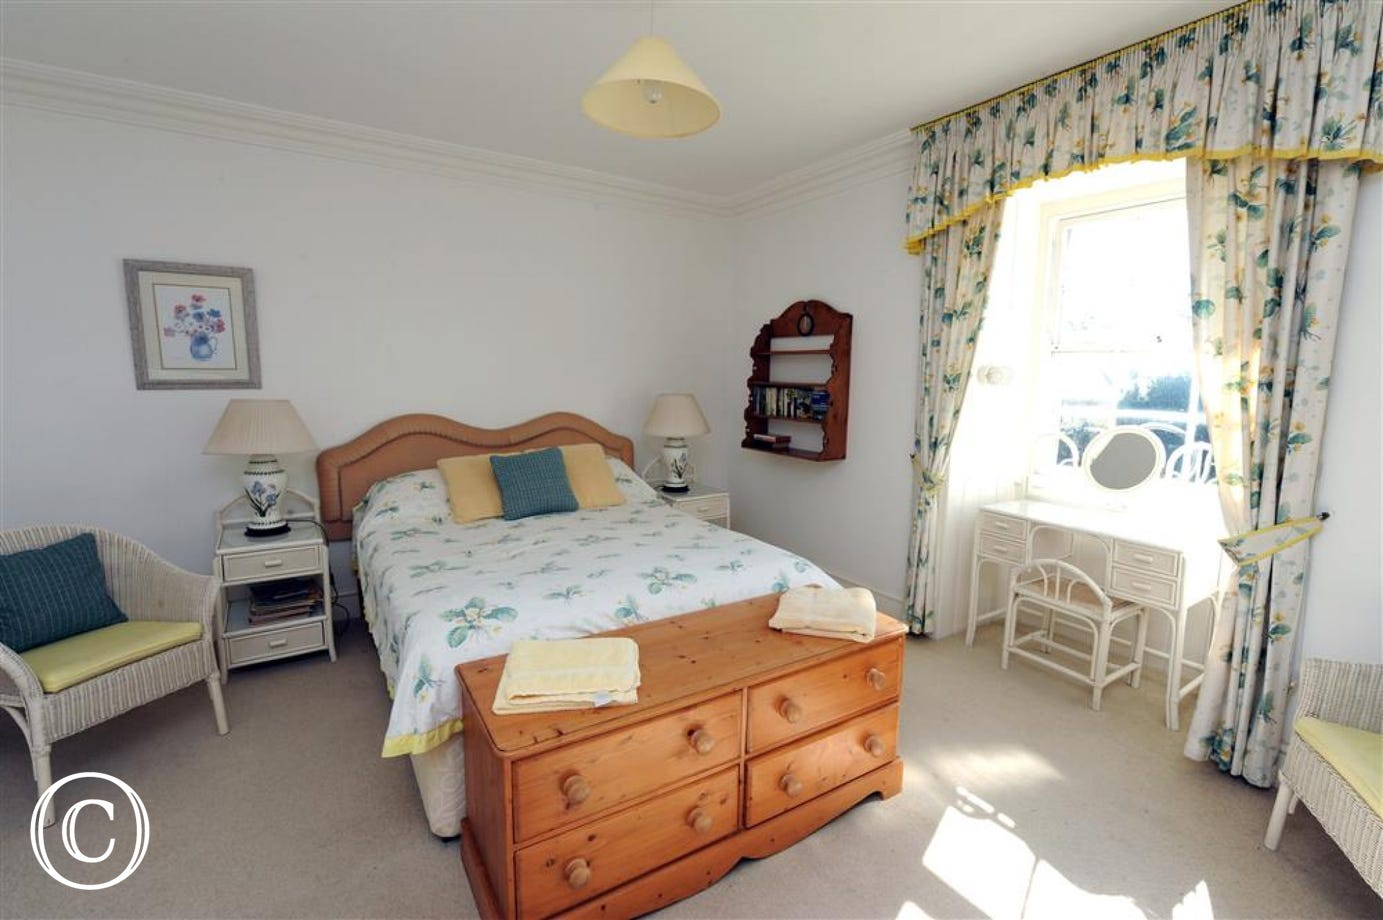 Double bedded room with cot & en suite shower and whb.